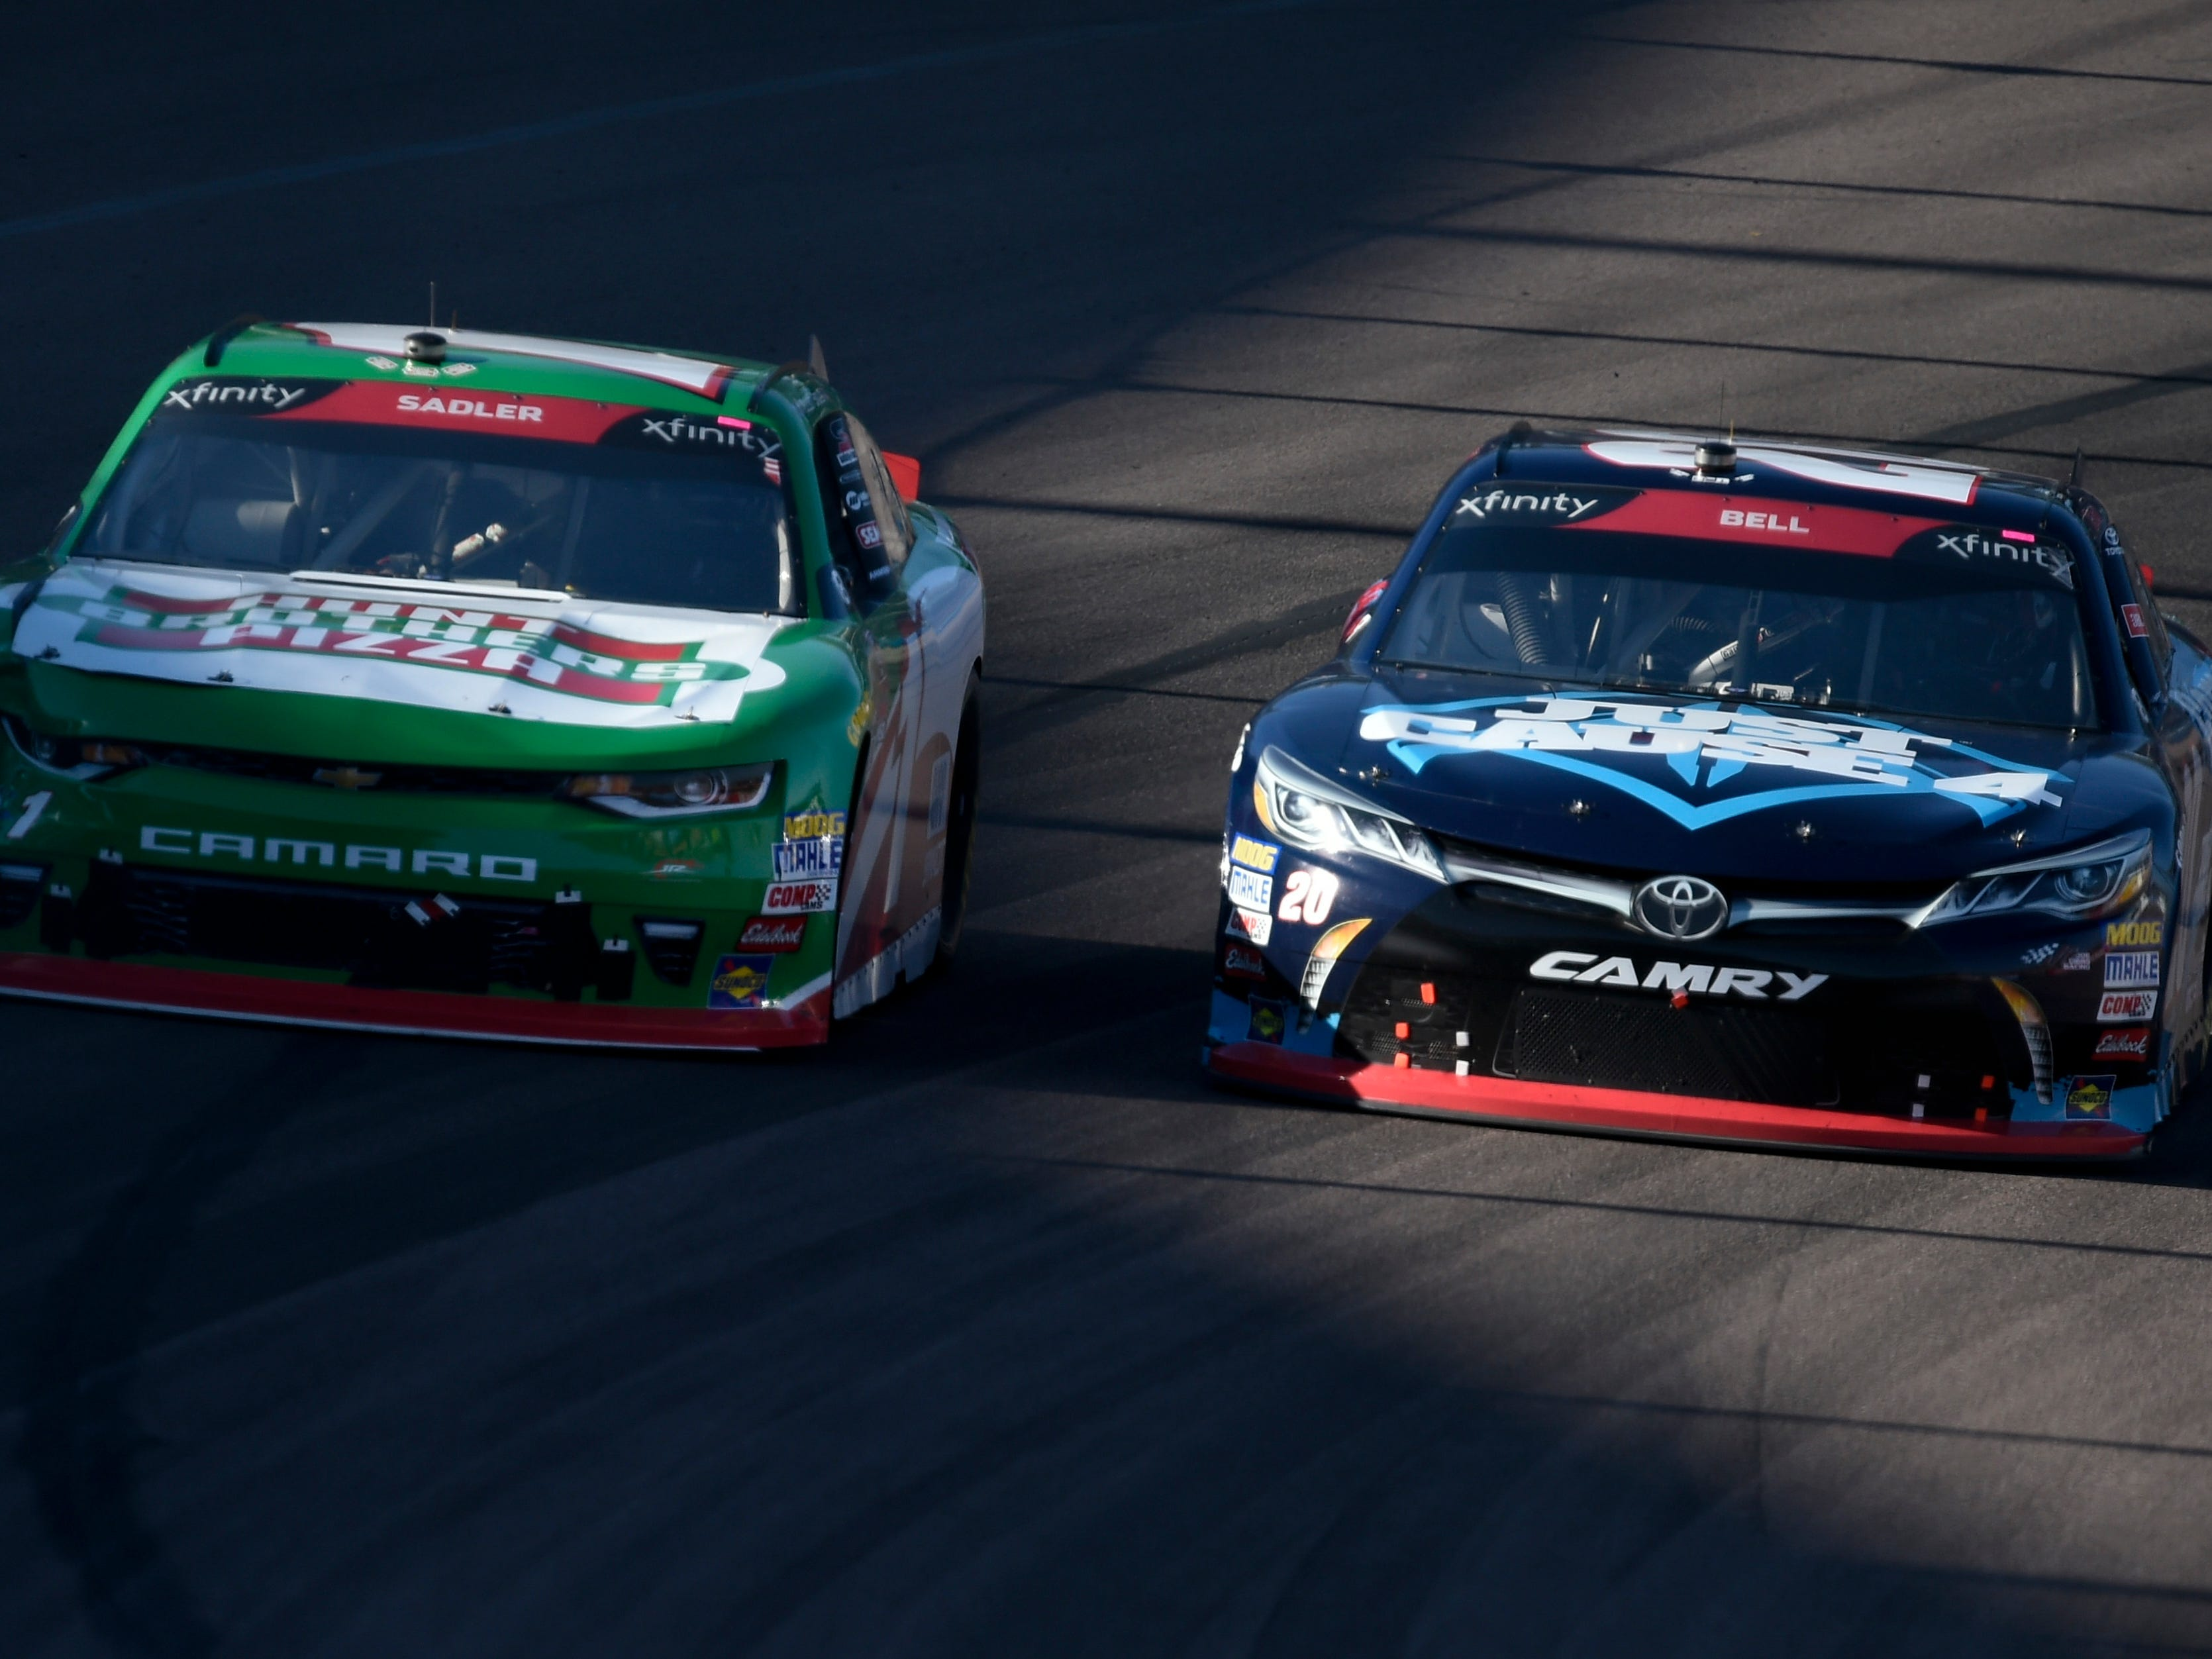 Nov 10, 2018; Avondale, AZ, USA; NASCAR Xfinity Series driver Christopher Bell (20) next to NASCAR Xfinity Series driver Elliott Sadler (1) during the NASCAR Xfinity Series Race at ISM Raceway. Mandatory Credit: Kelvin Kuo-USA TODAY Sports